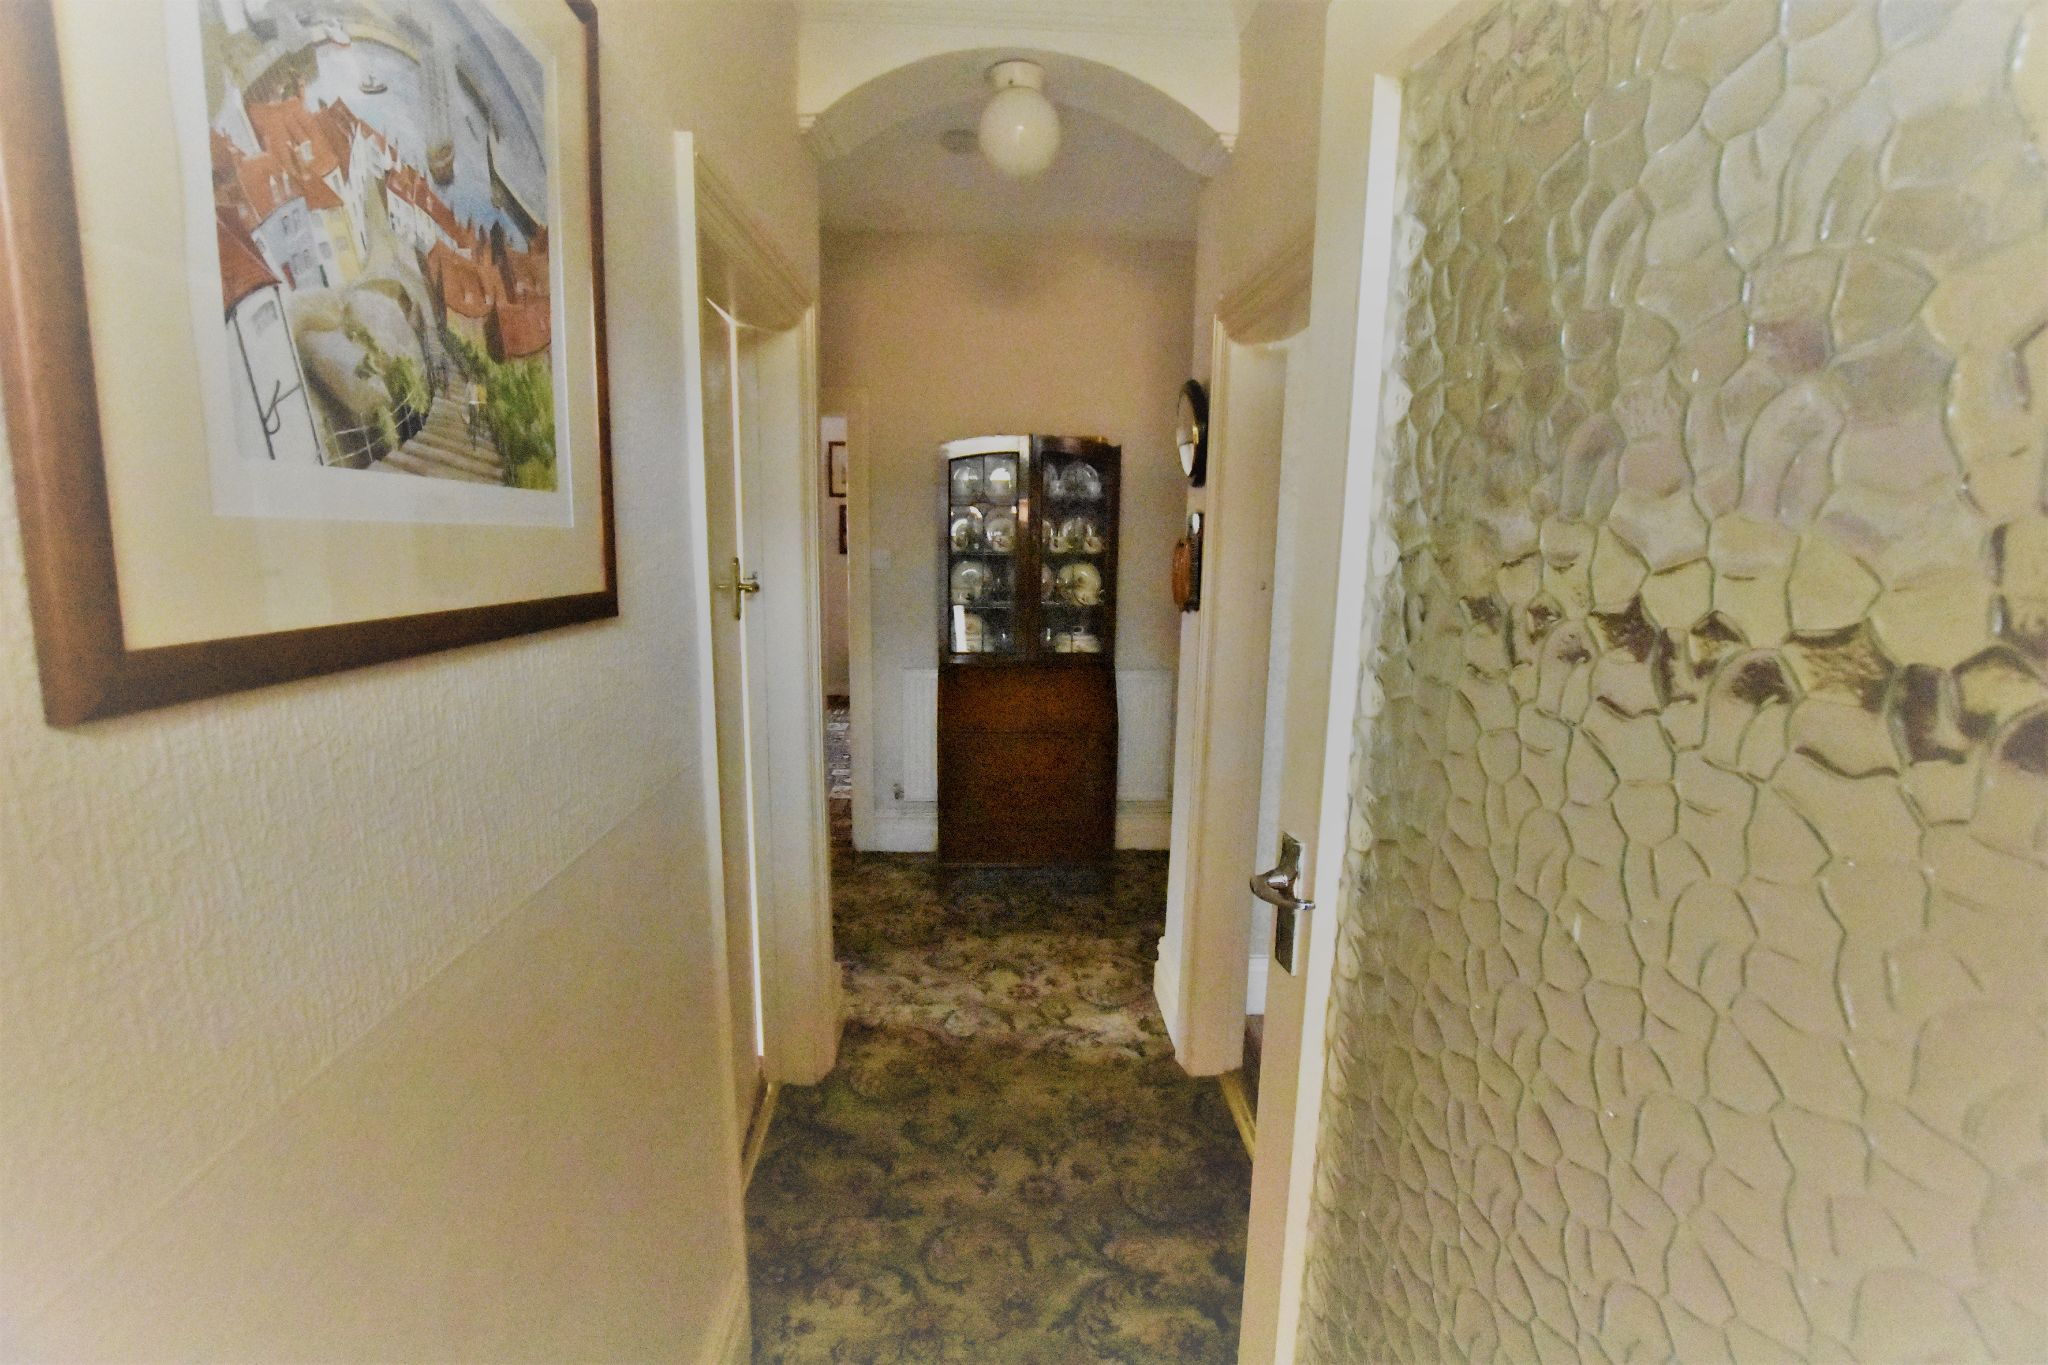 Image 1 of 1 of HALLWAY, on Accommodation Comprising for